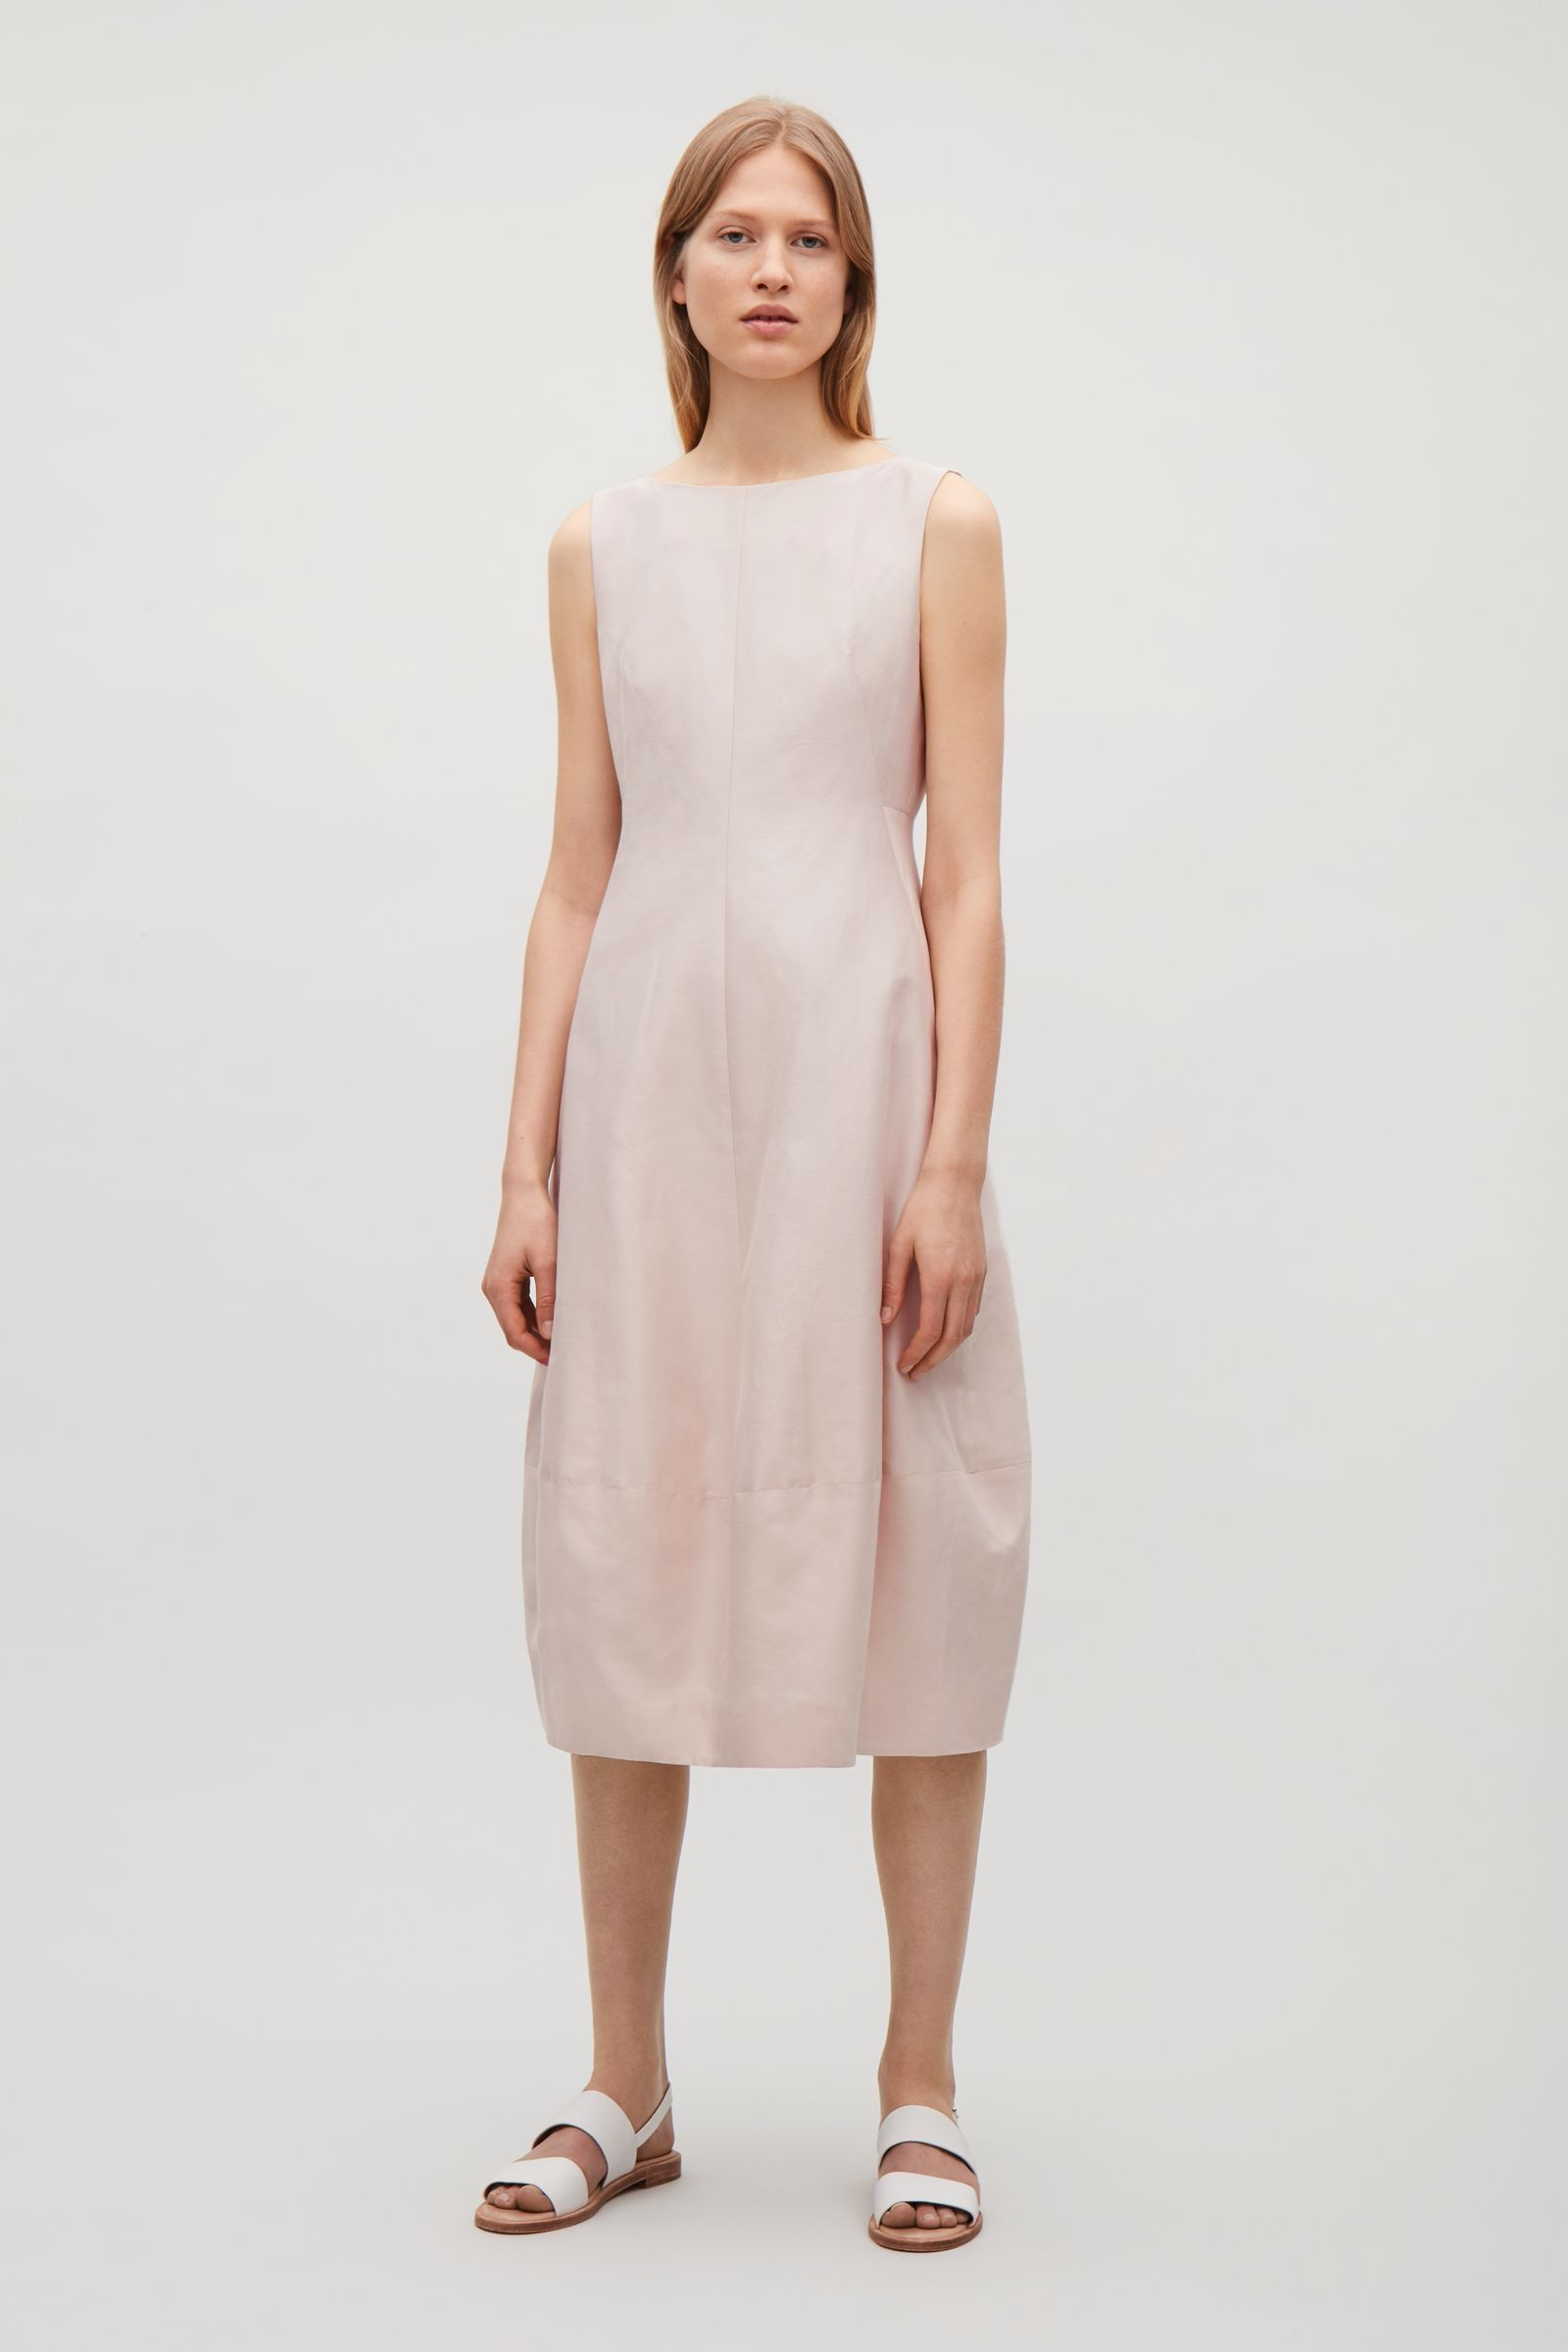 COS image 1 of Sleeveless dress with cocoon skirt in Biscuit | Style ...